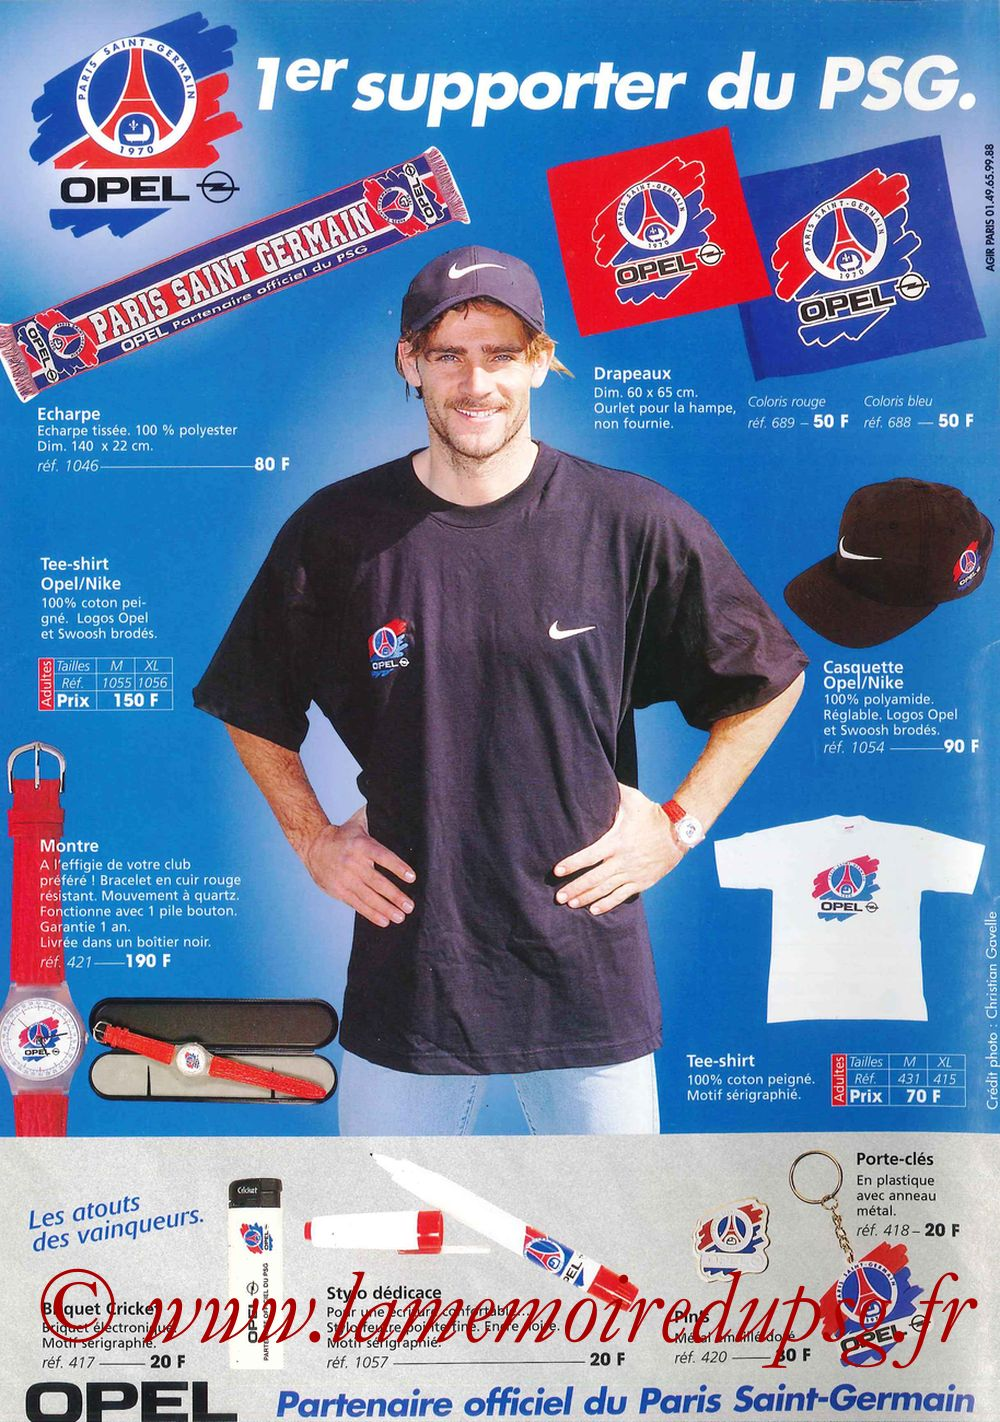 Catalogue PSG - 1997-98 - Pages 28